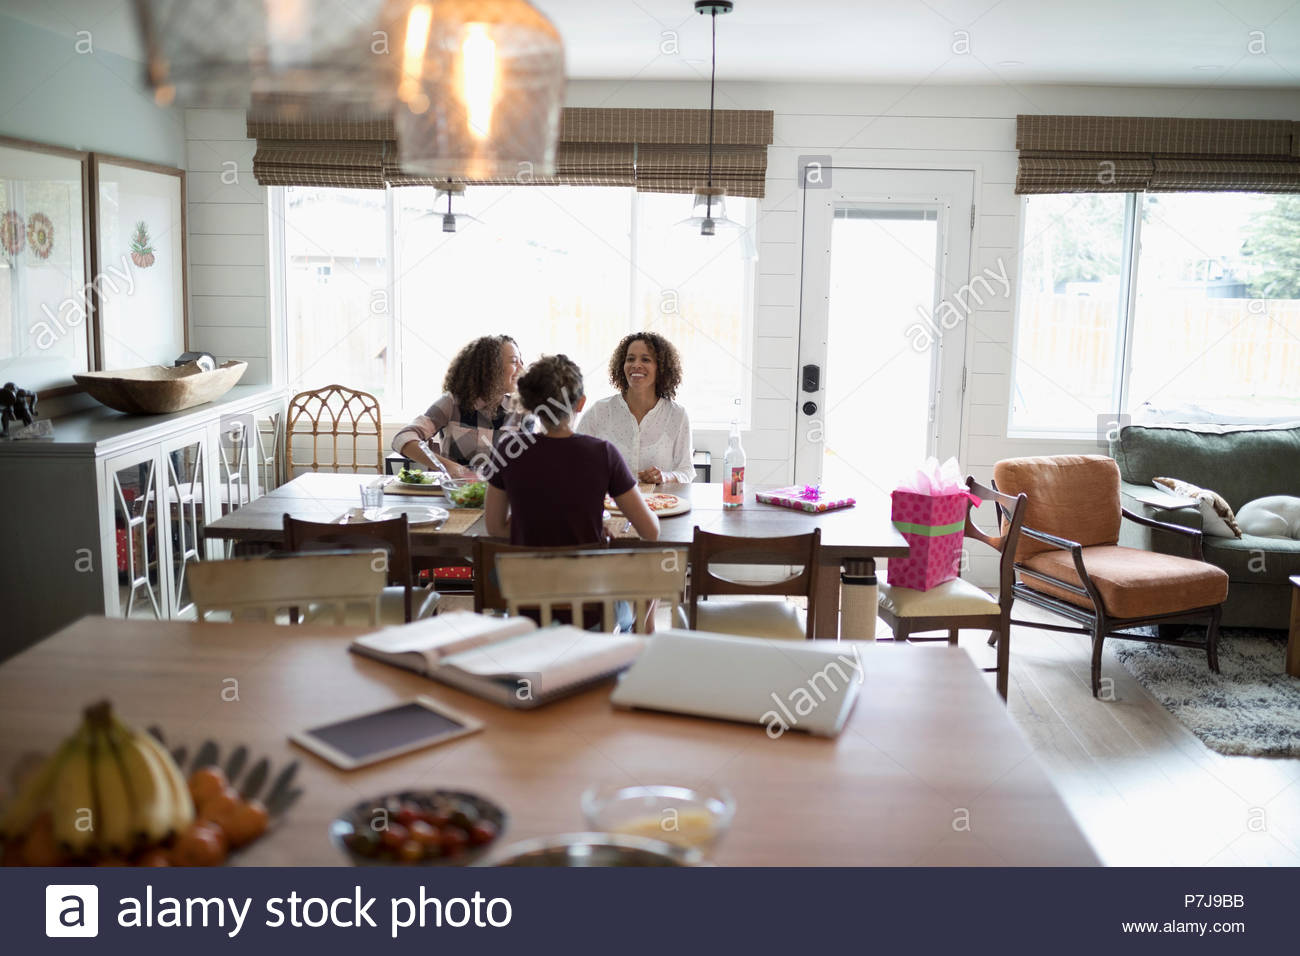 Mother and daughters enjoying birthday lunch - Stock Image